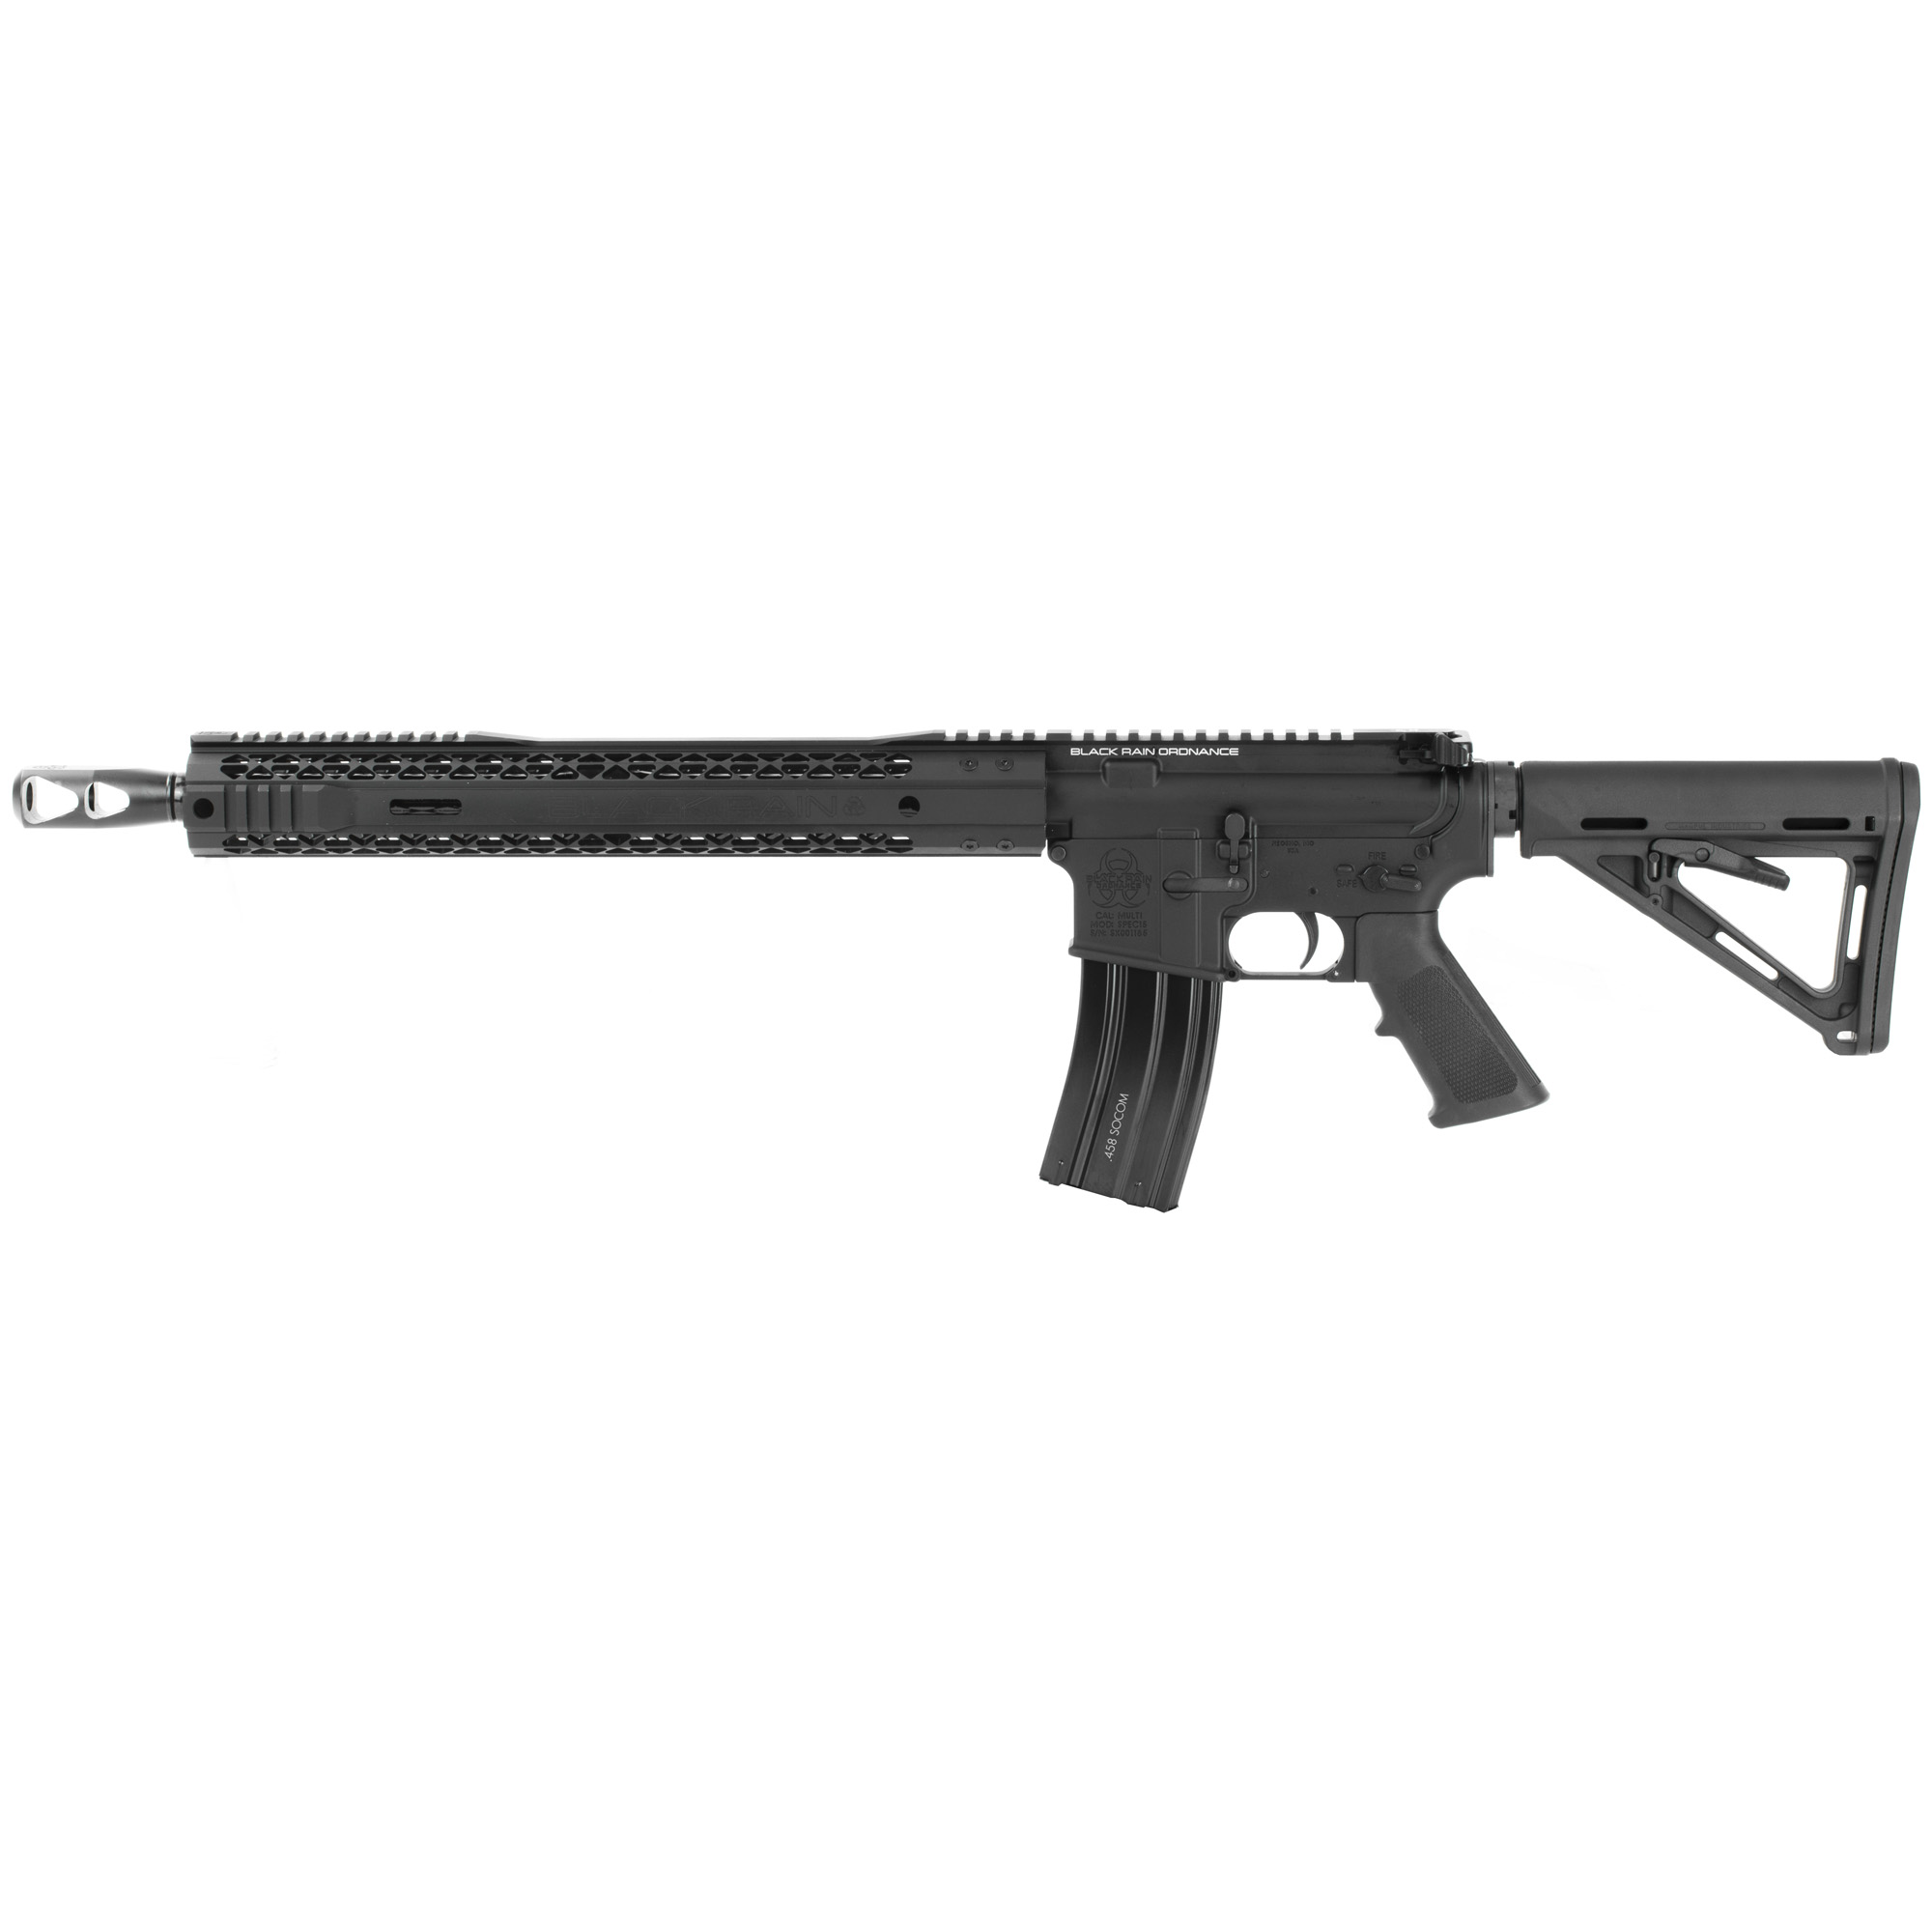 The Black Rain Ordnance Spec15 series is a line of AR15 rifles and pistols built to meet bid requirements for law enforcement and military personnel and as an affordable option for civilian use. Ships with one .458 SOCOM optimized magazine. (10 Round Capacity)